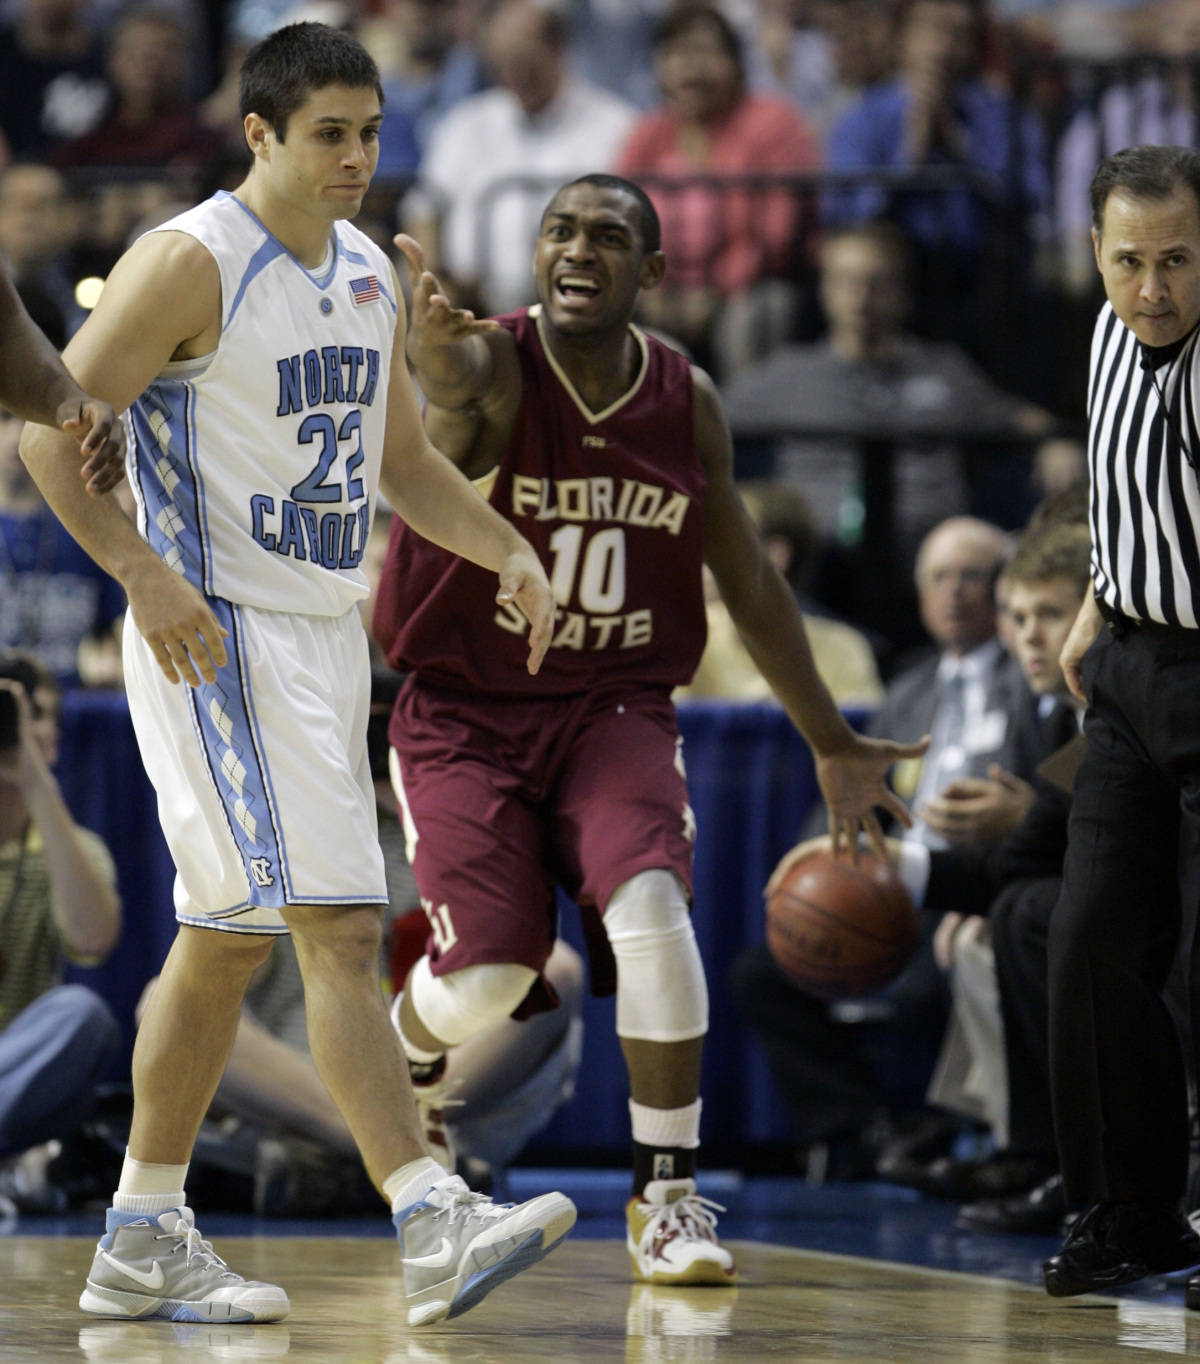 Florida State's Ralph Mims (10) gestures toward North Carolina's Surry Wood (23) during a second round game of the Men's Atlantic Coast Conference basketball tournament in Tampa, Fla., Friday, March 9, 2007. (AP Photo/David J. Phillip)